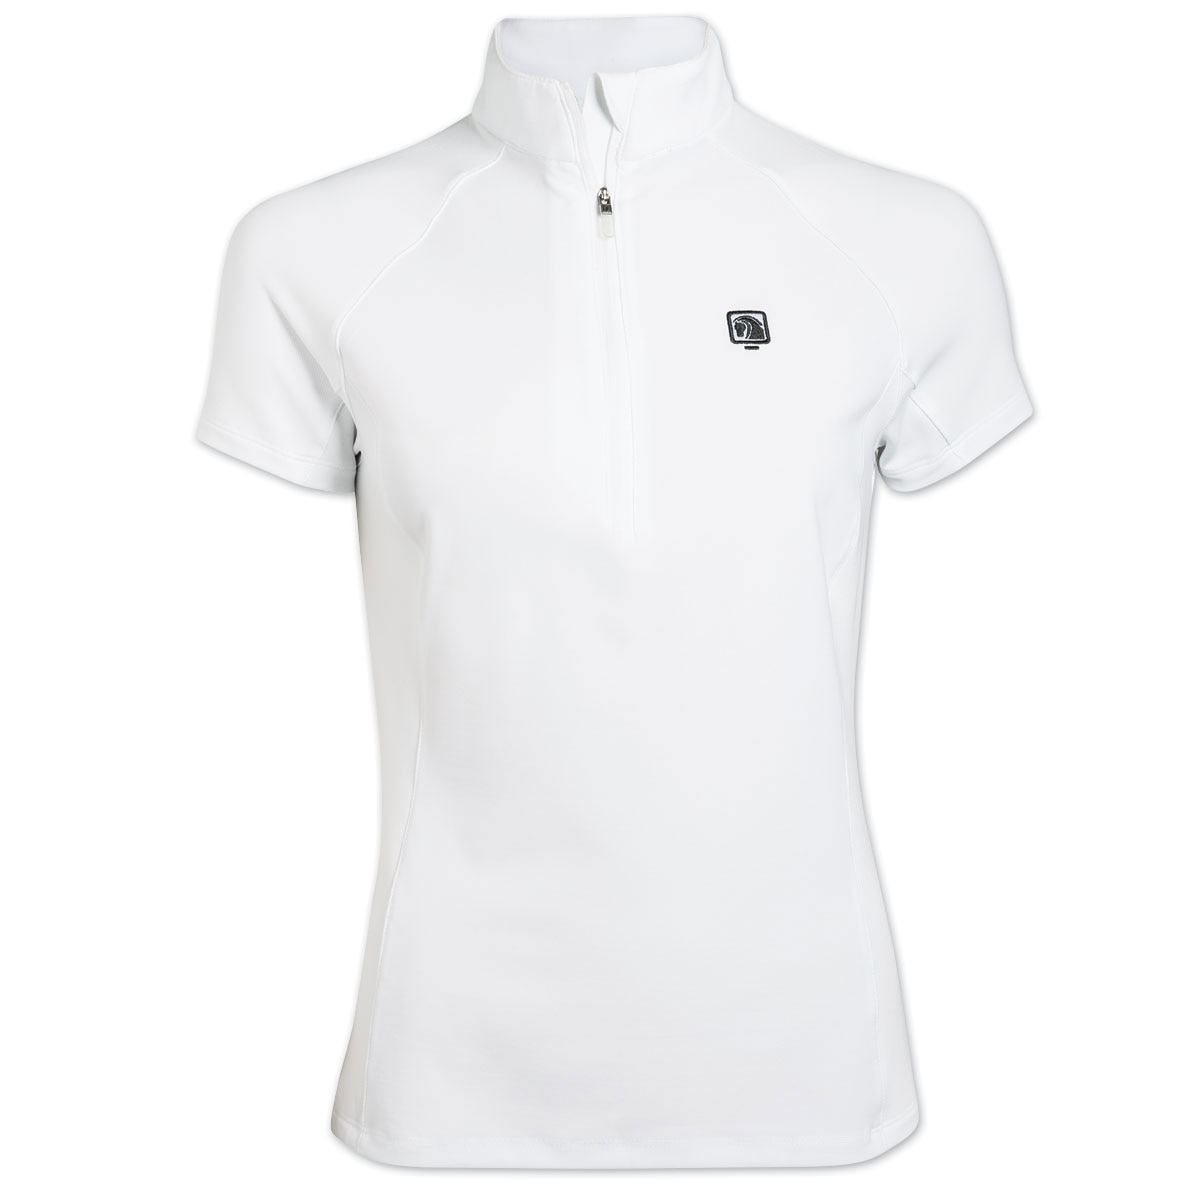 Romfh Tempo Short Sleeve Show Shirt